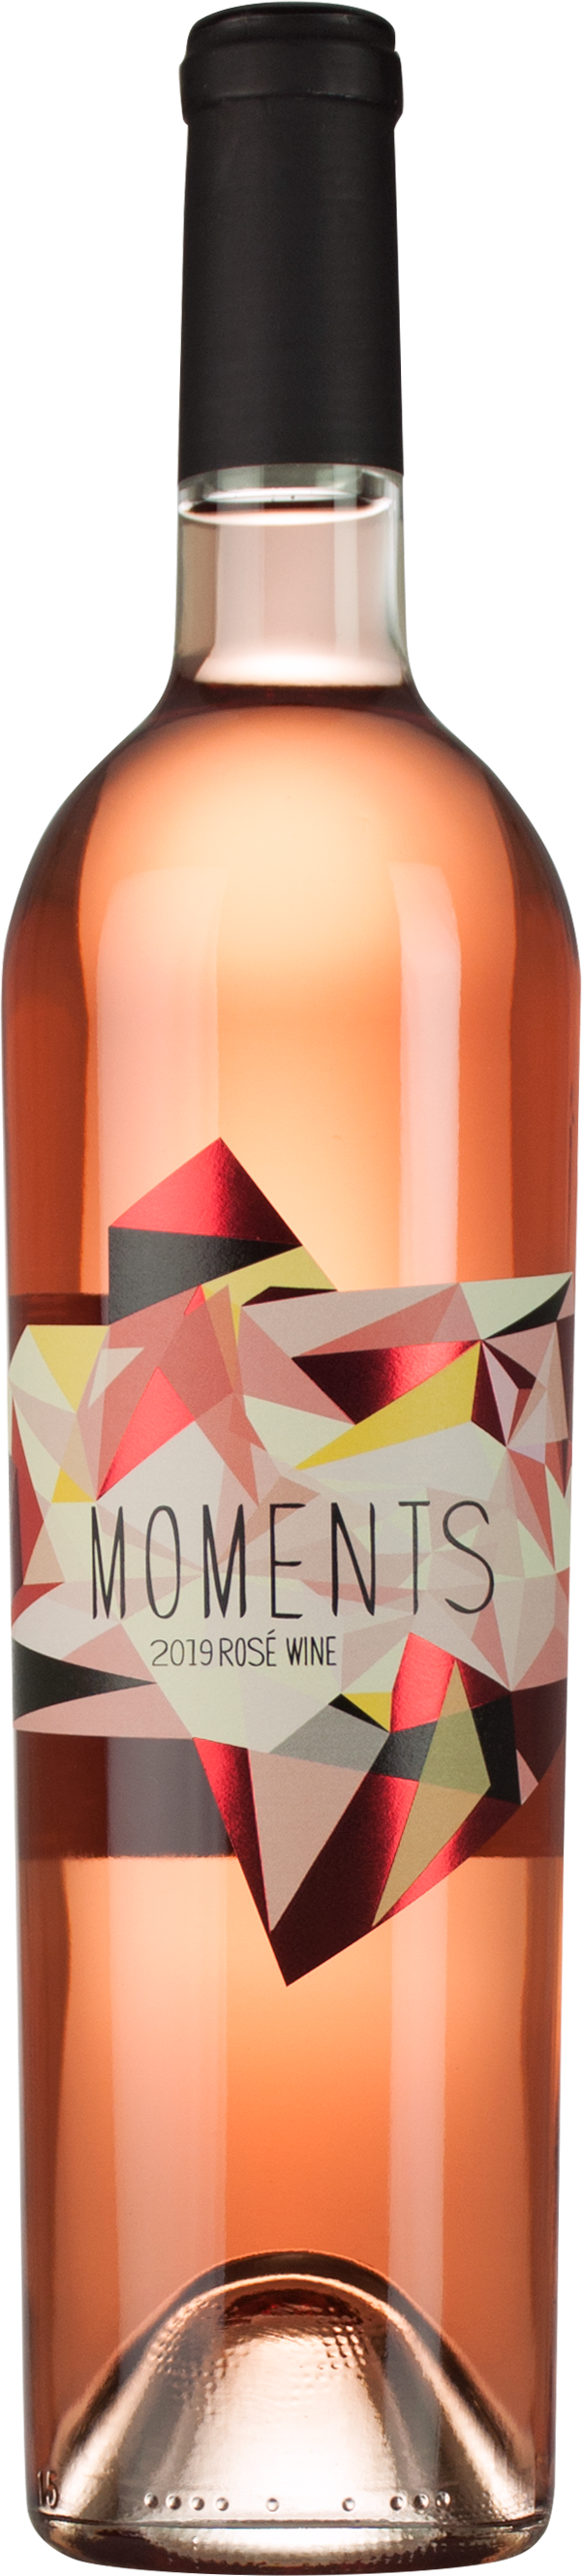 Moments Rose' 2019